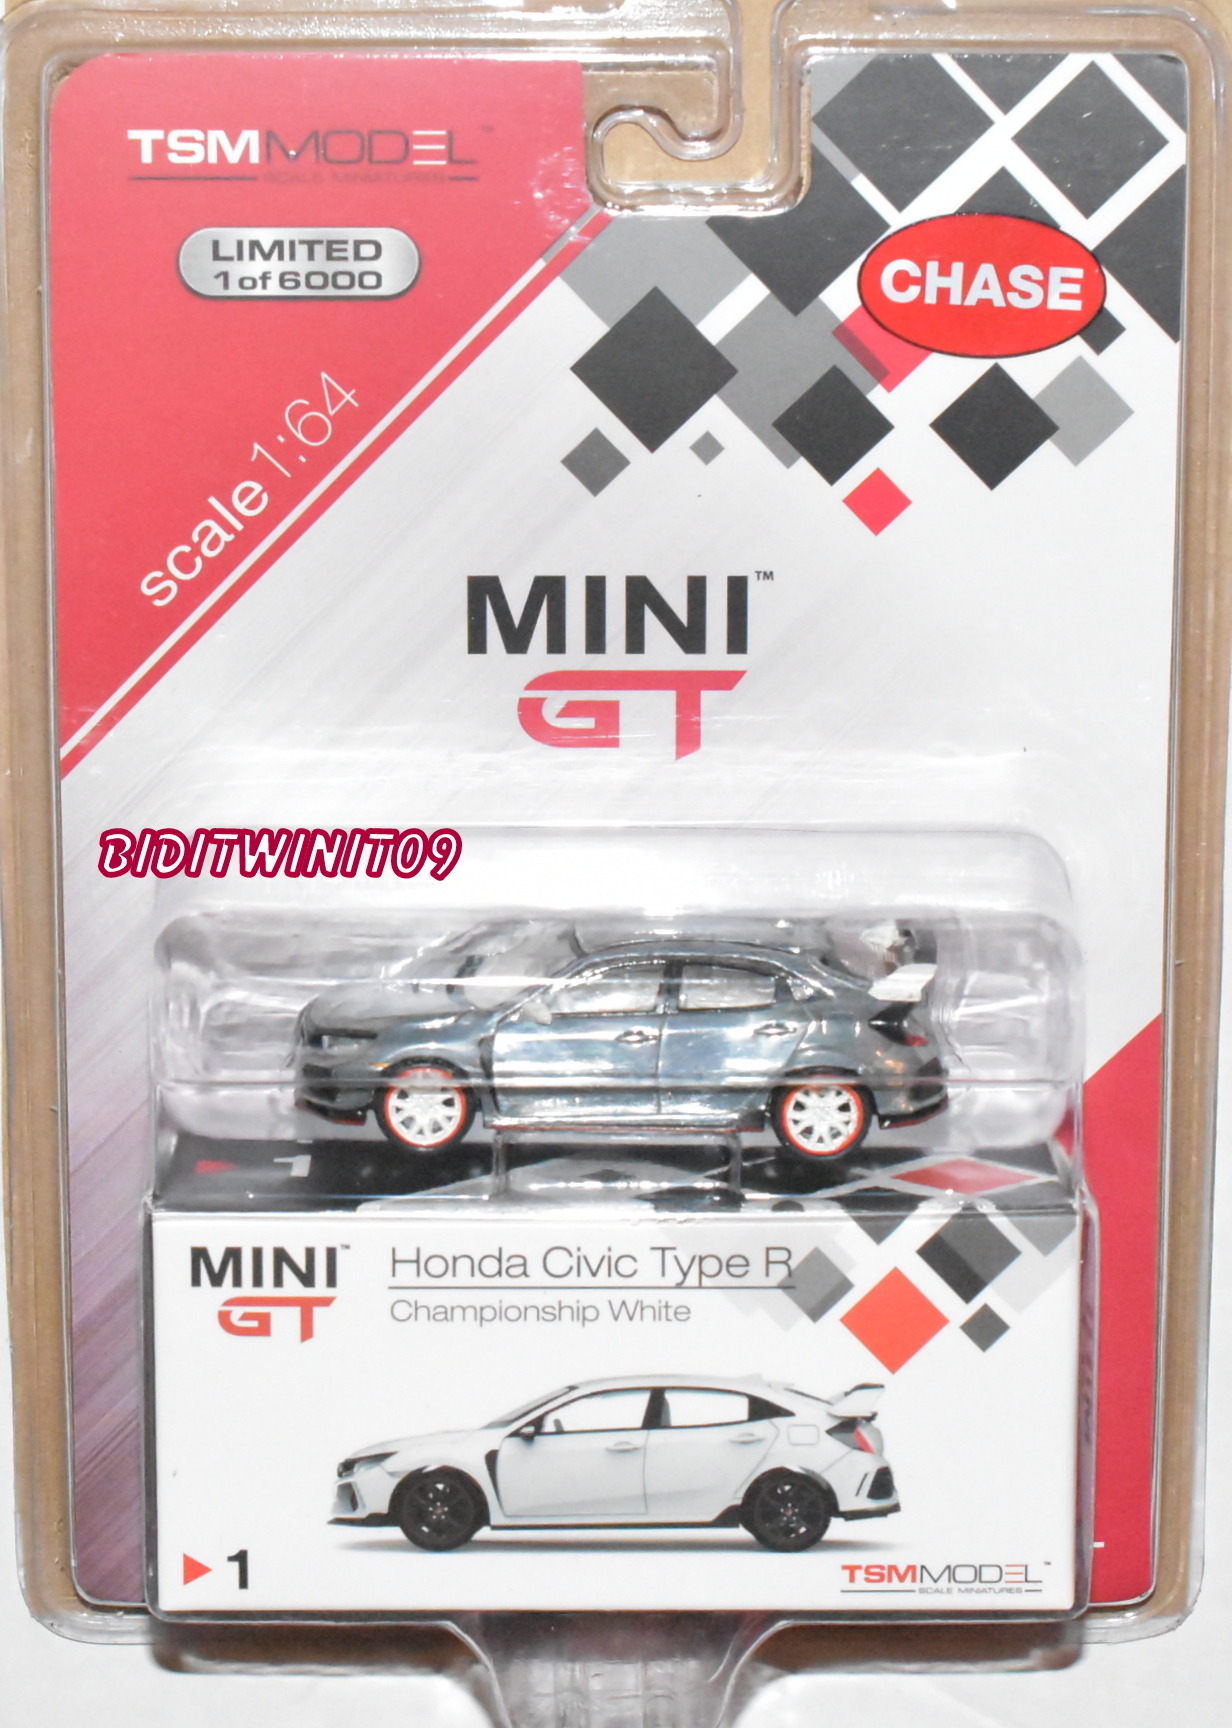 MINI GT TSM MODEL HONDA CIVIC TYPE R ZAMAC CHASE MIJO EXCLUSIVE